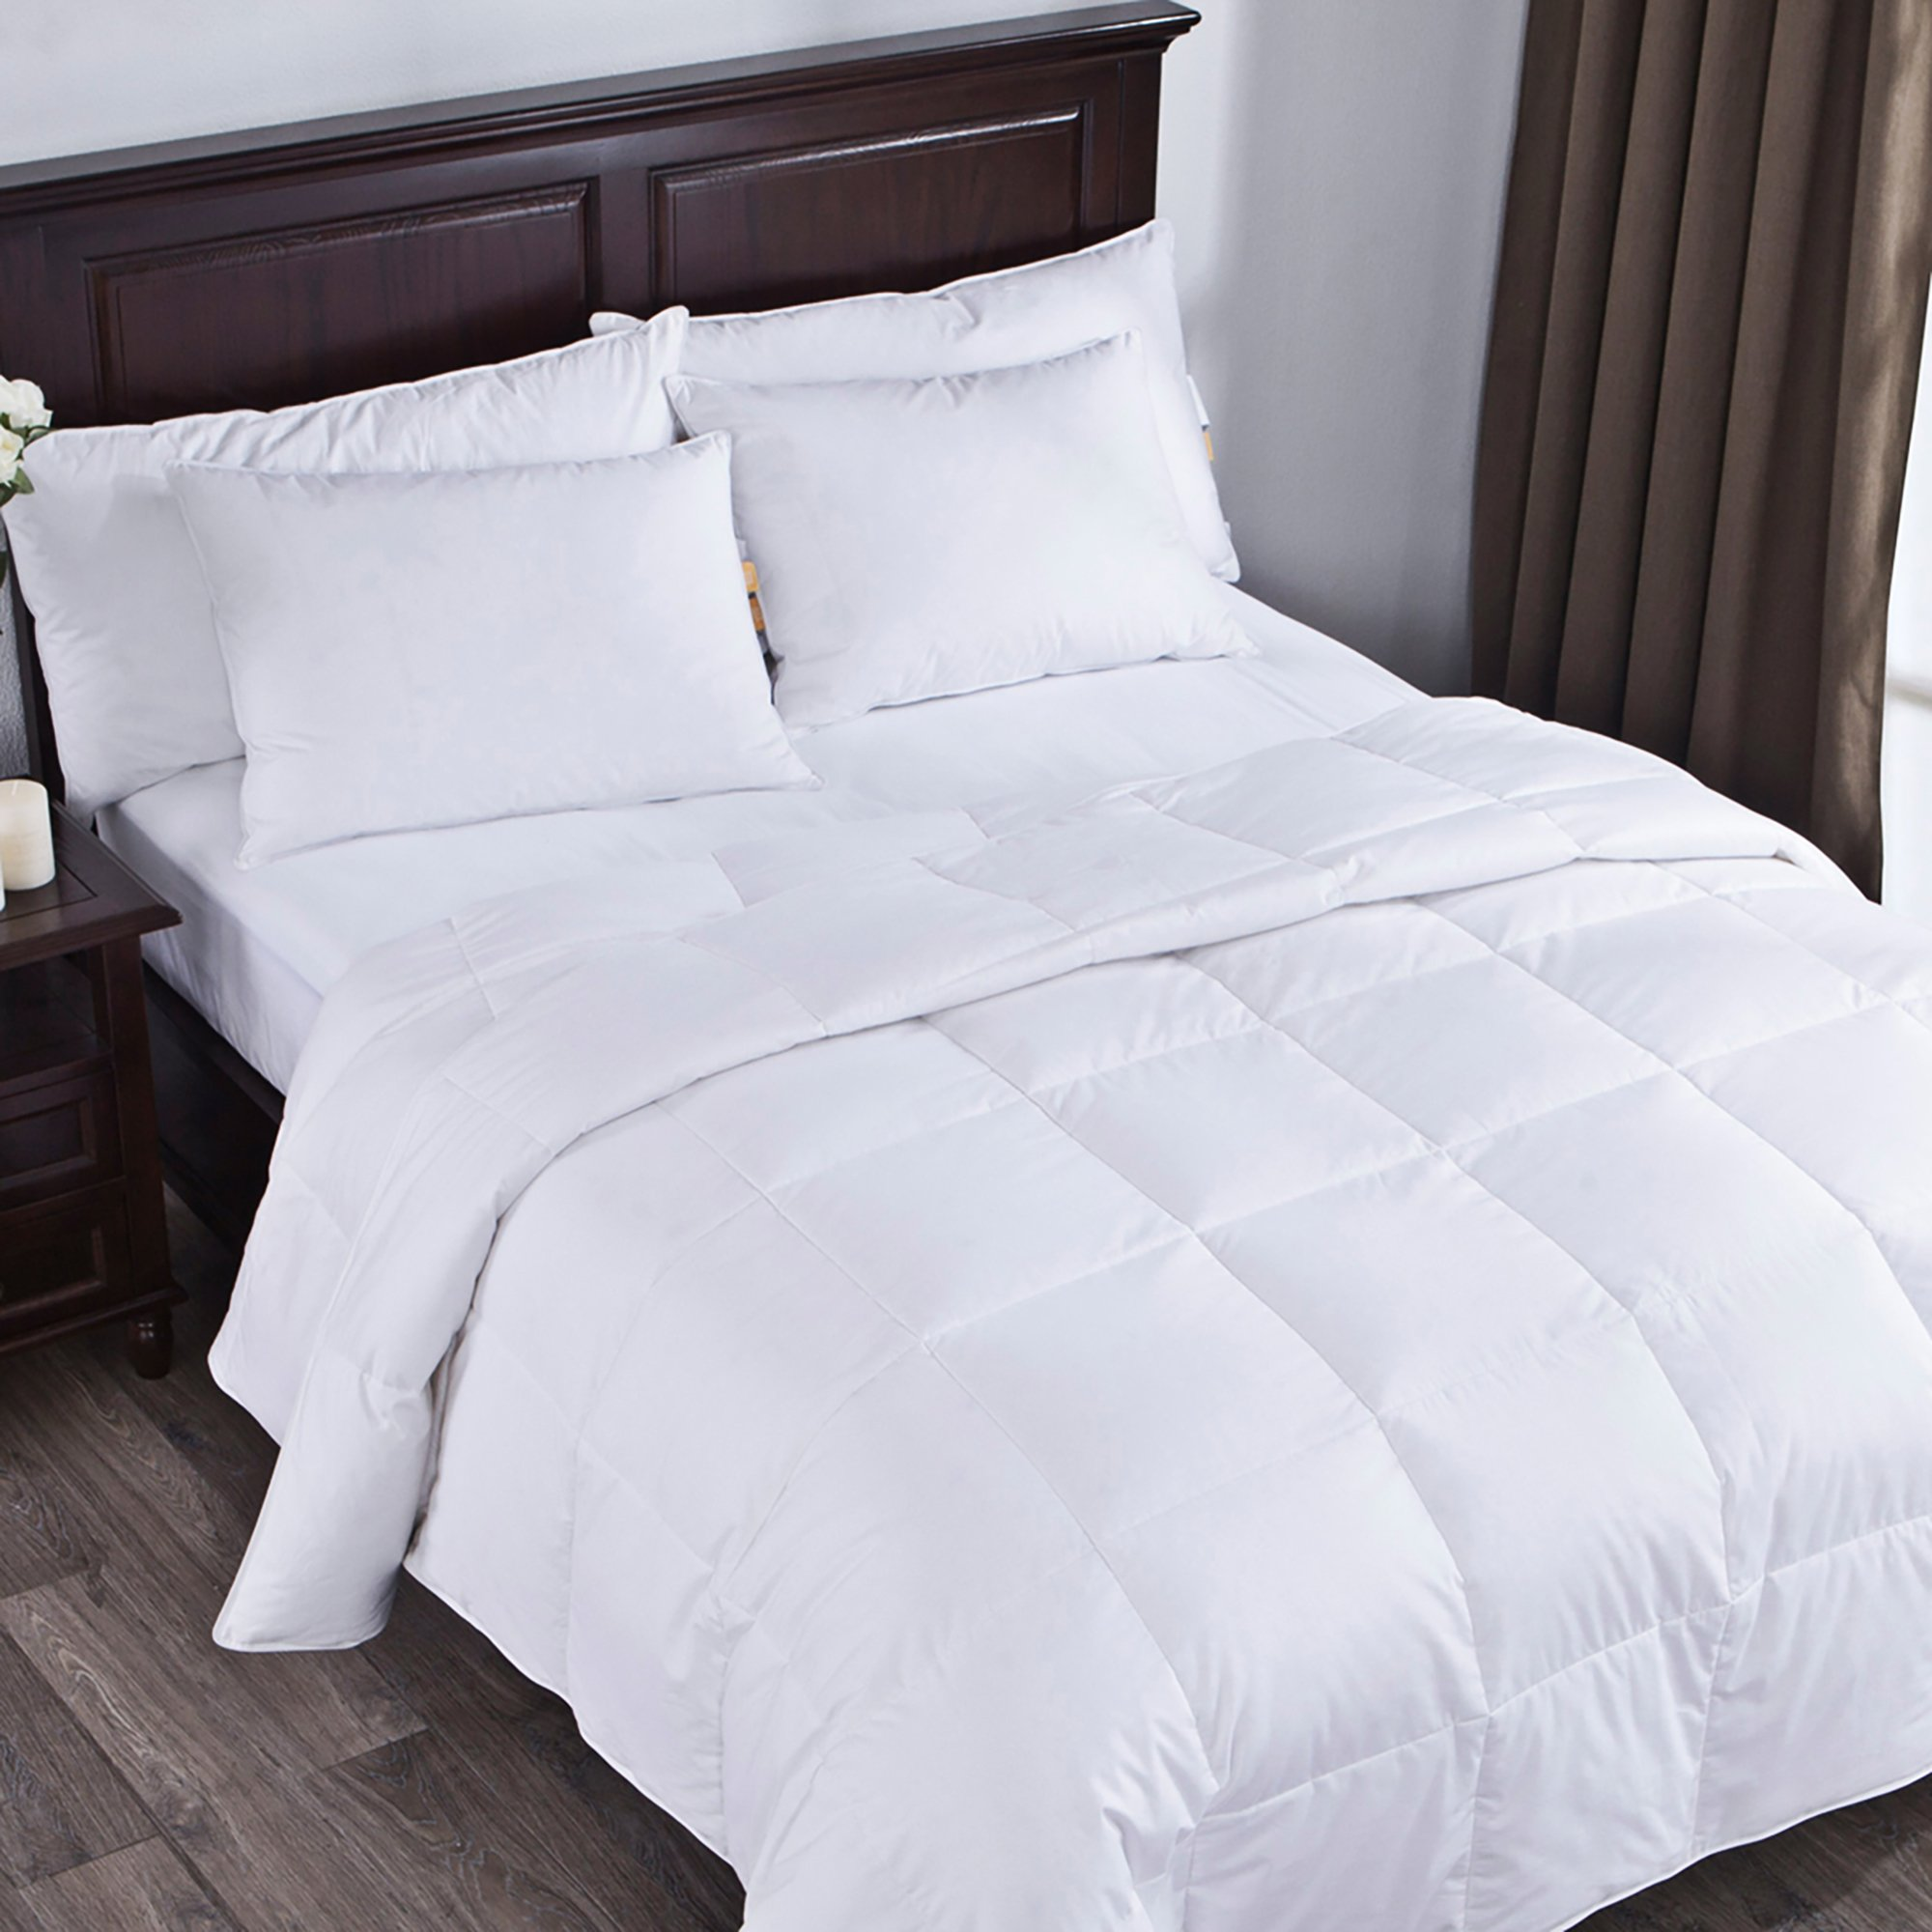 puredown Lightweight White Goose Down Comforter Duvet Insert 300 Thread Count 100% Cotton Fabric 600 Fill Power Down Down Conforter, Full/Queen, by puredown (Image #3)